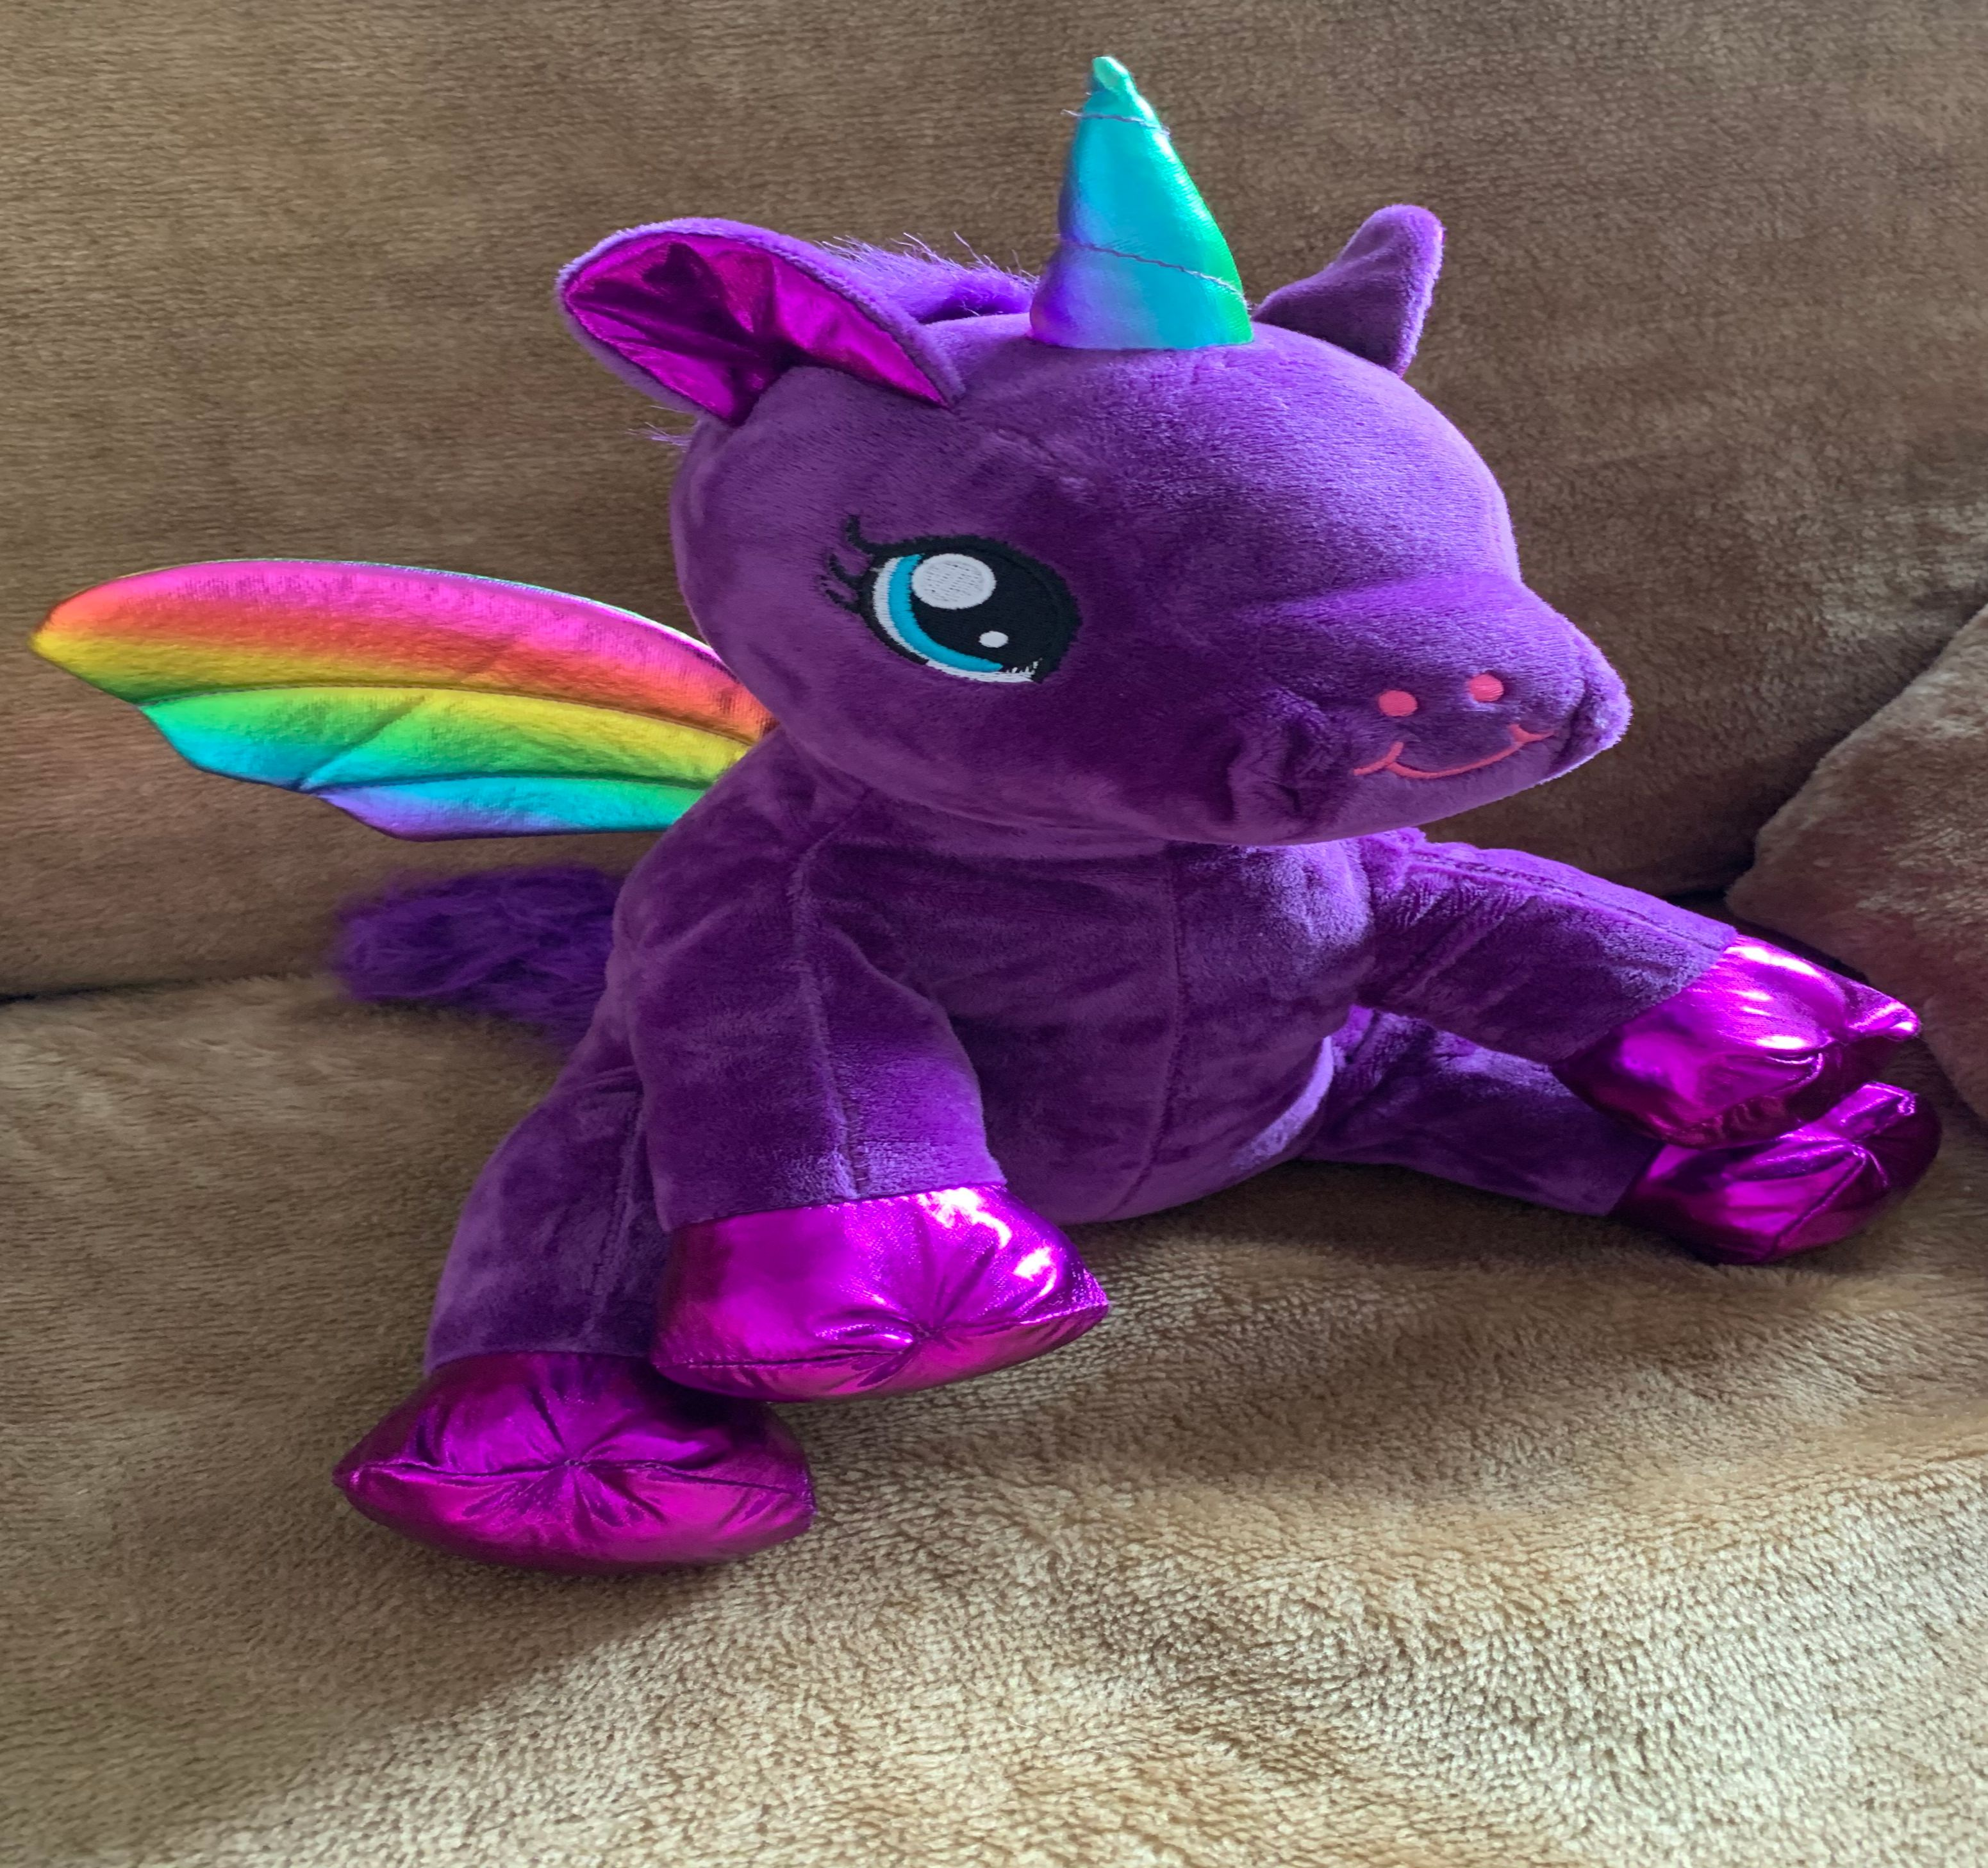 Weighted Purple unicorn with rainbow wings 16